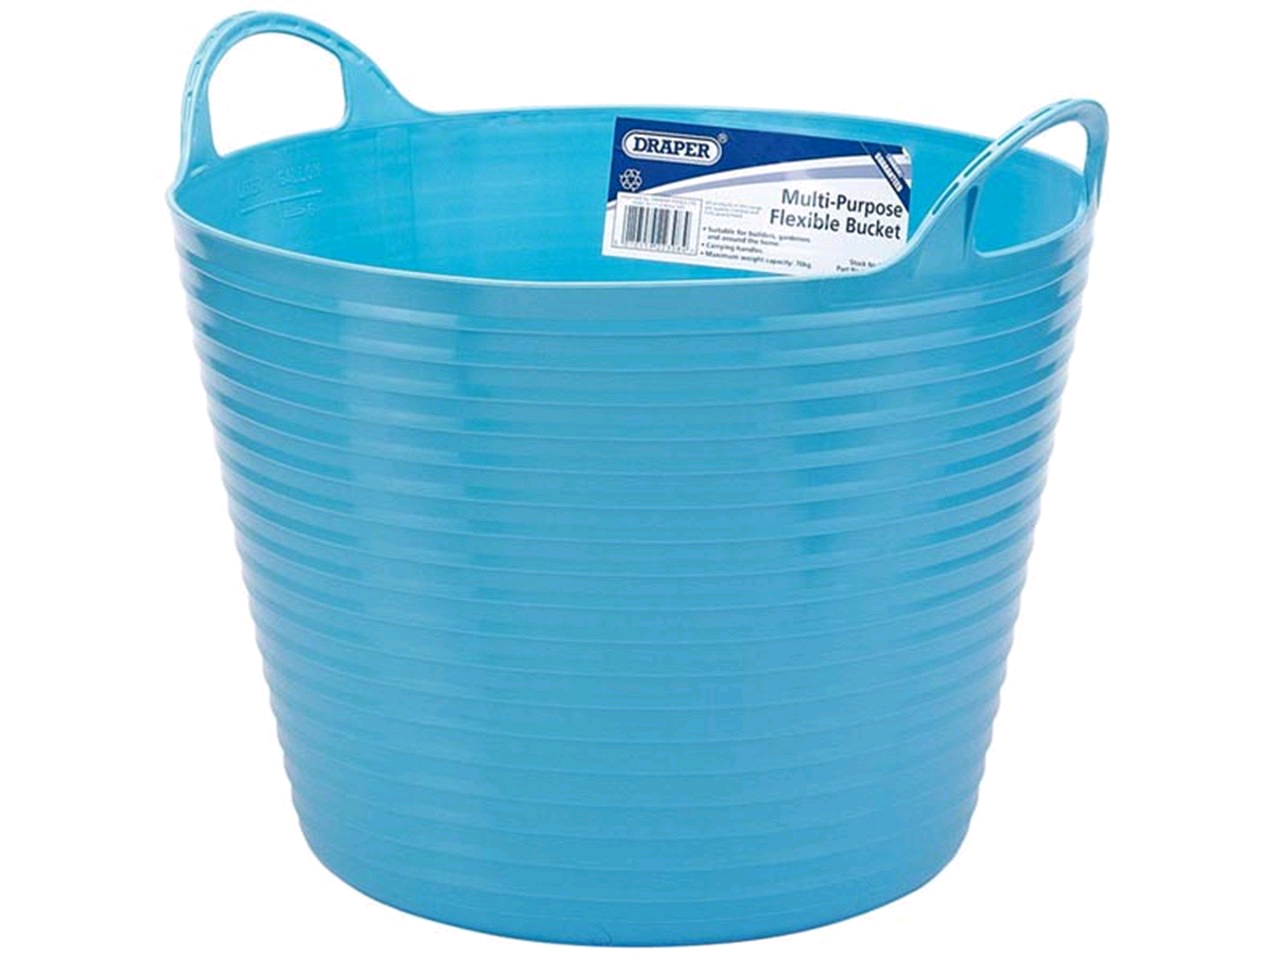 Draper 28Ltr Blue Flexi Bucket